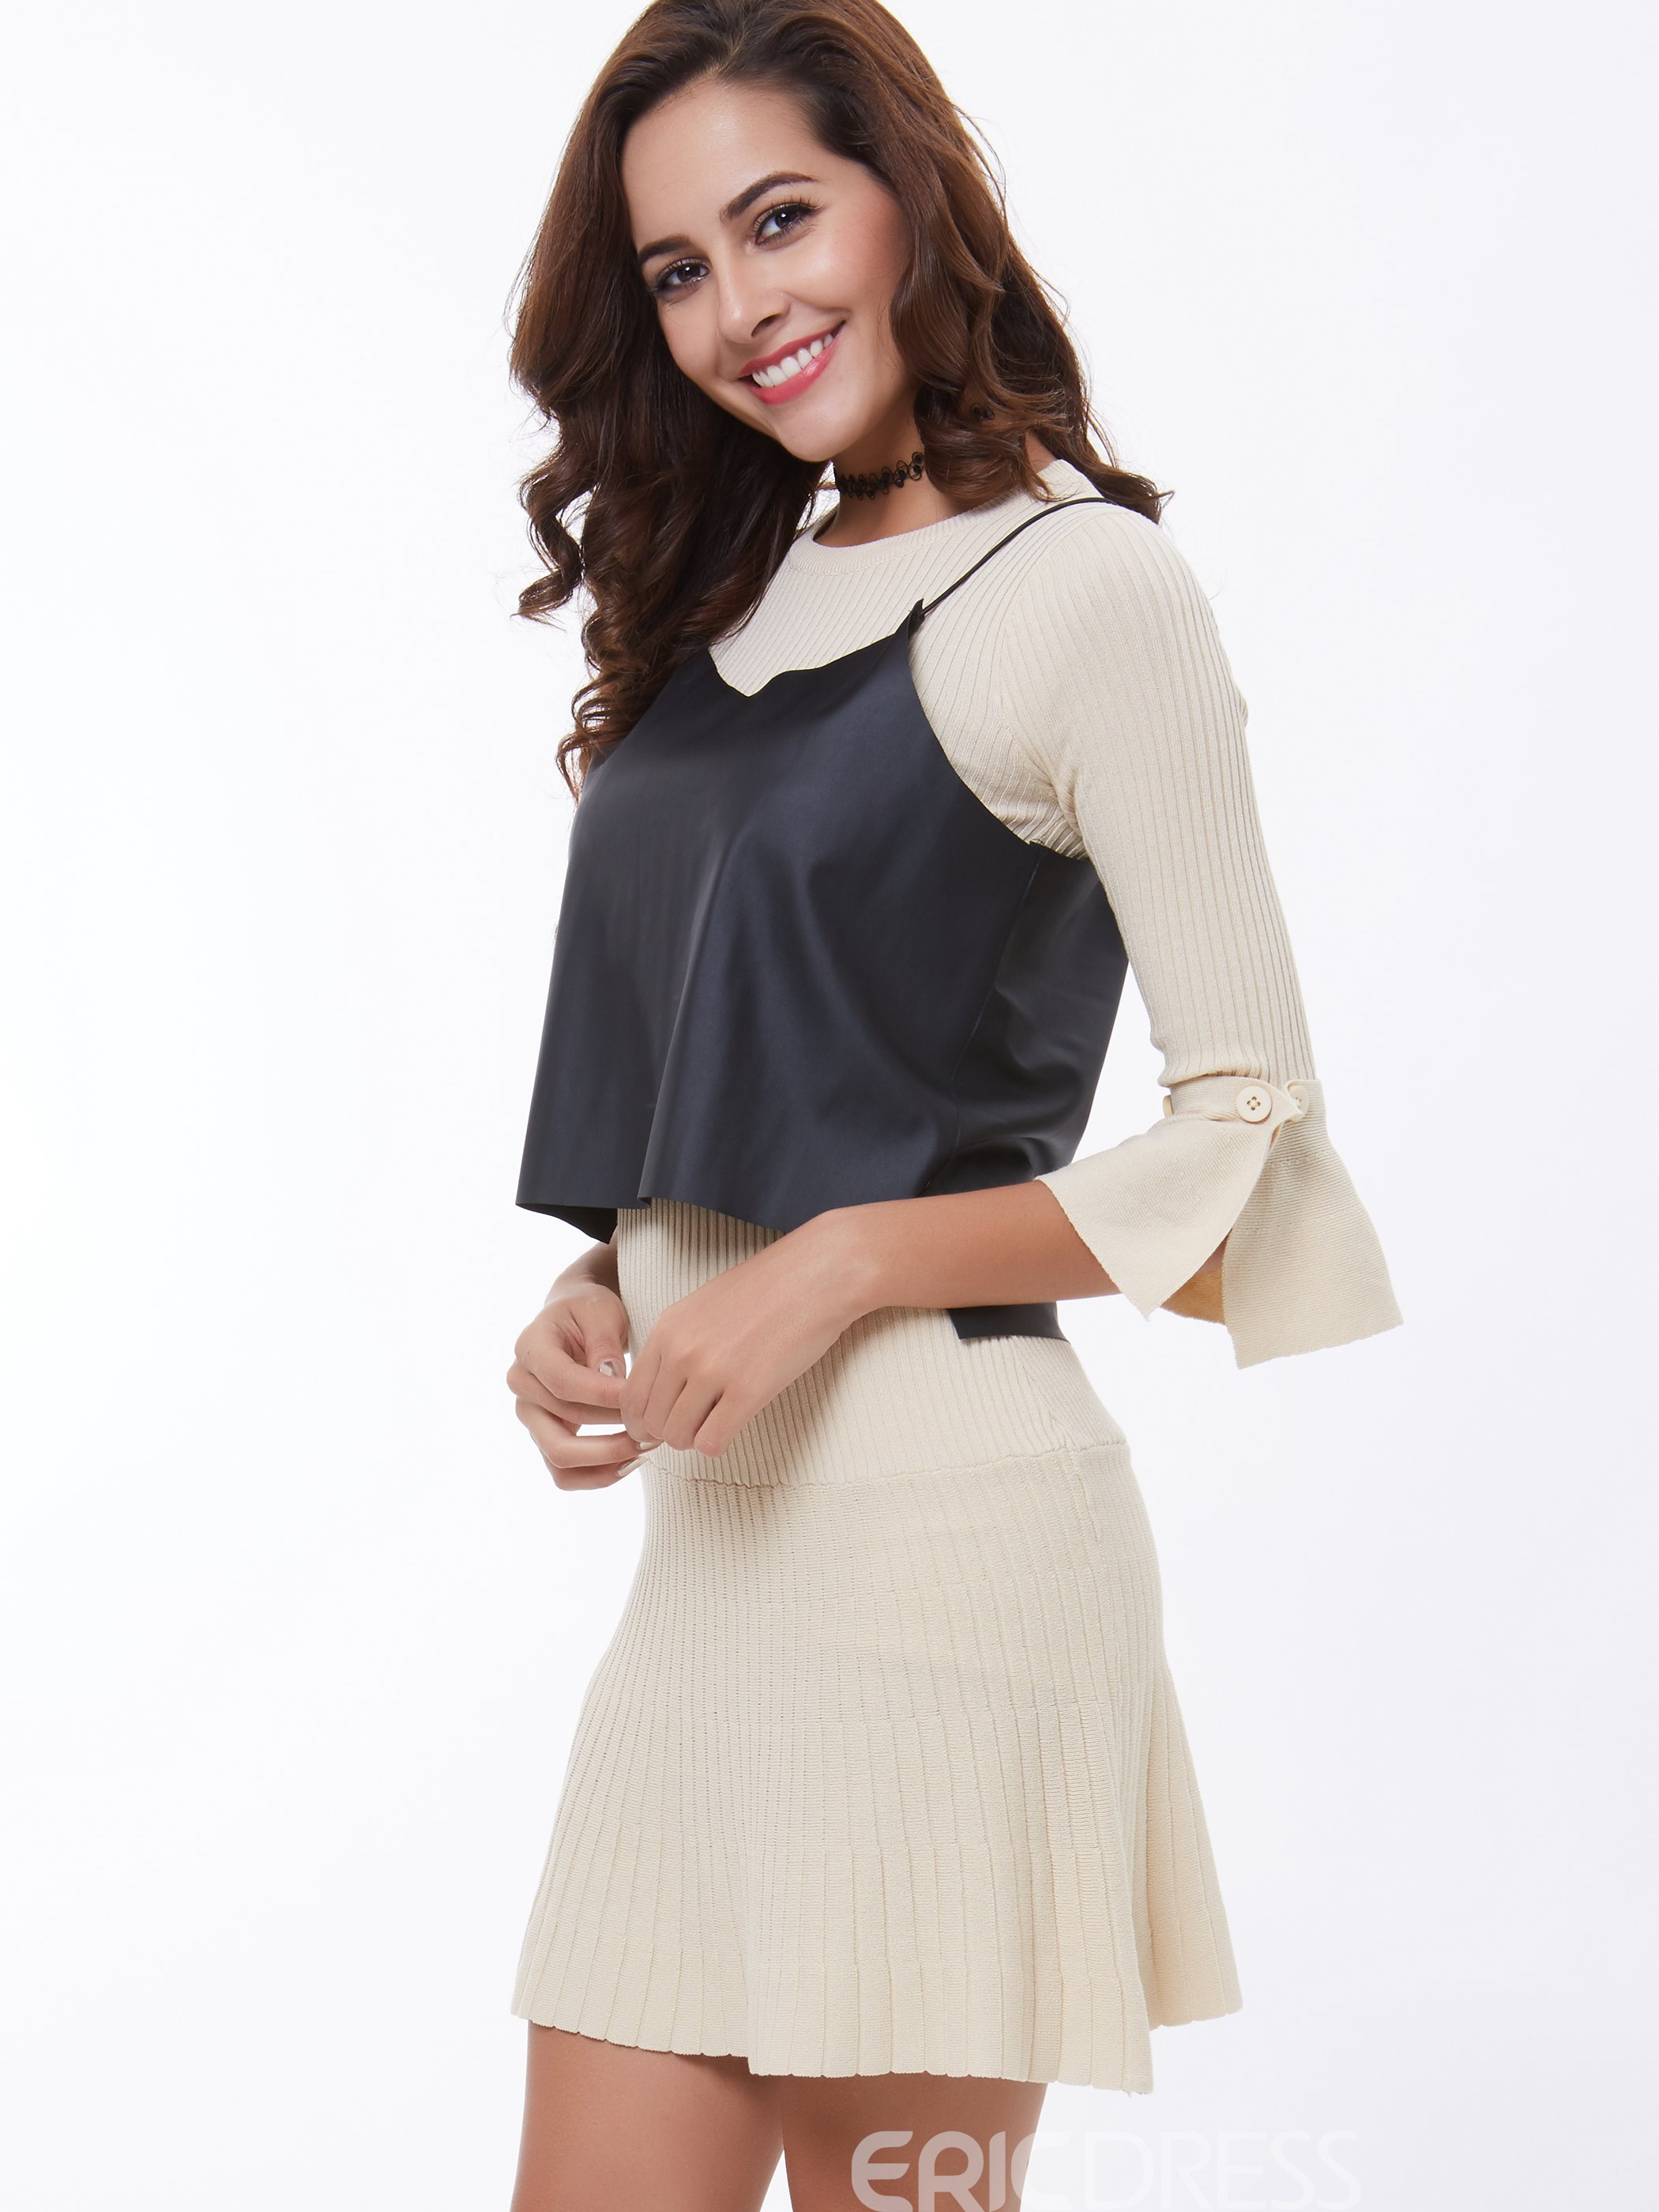 Ericdress Sweet Simple Knitwear Dress Suit